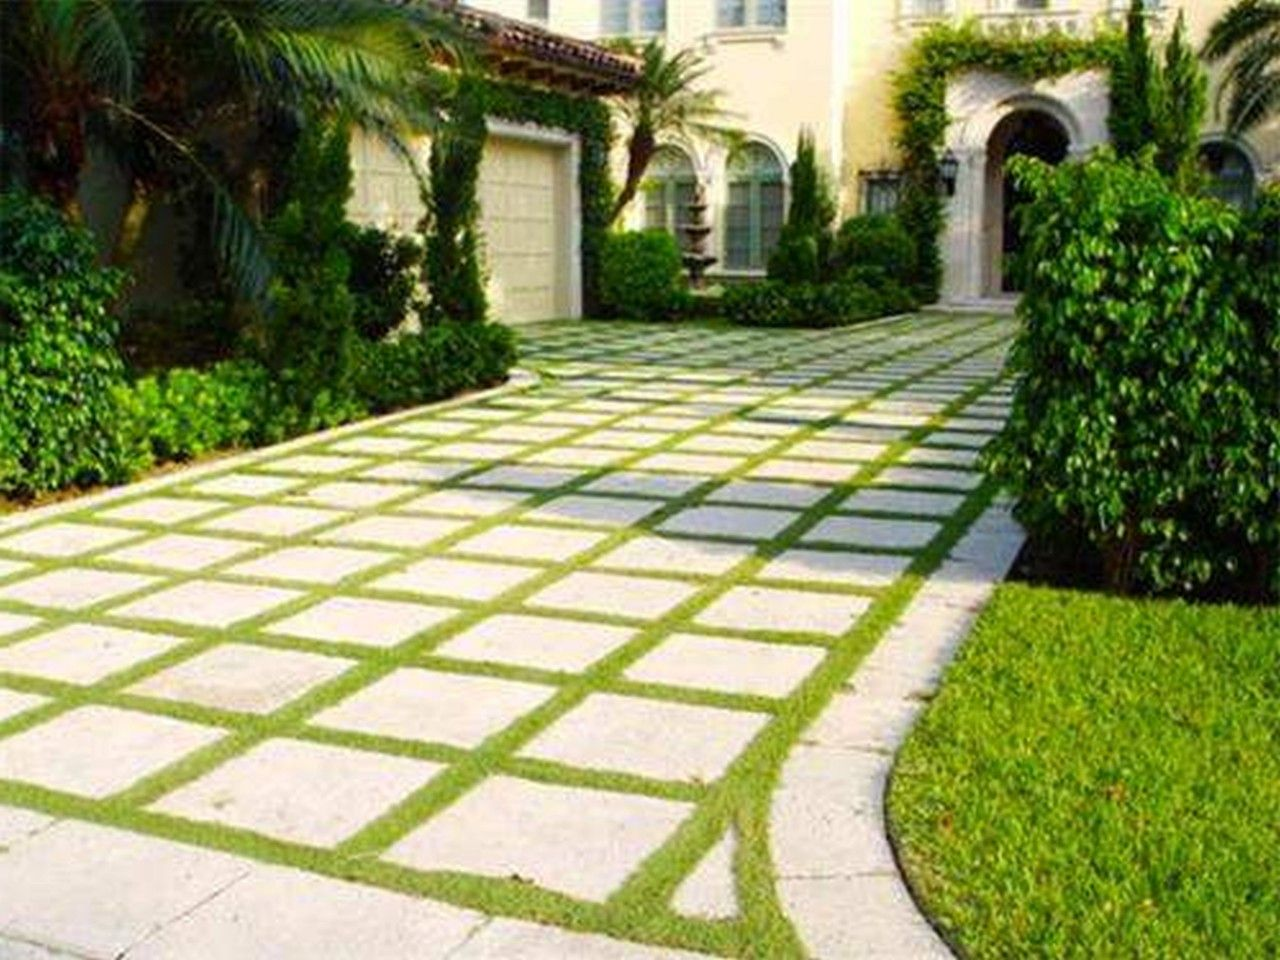 Small garden landscaping design ideas for front yard jpg - Front Yard Ladscaping With Plaid Pattern Cement Pavling Block And Green Grass With Small Backyard Design Also Front Yard Landscaping Ideas With Rocks